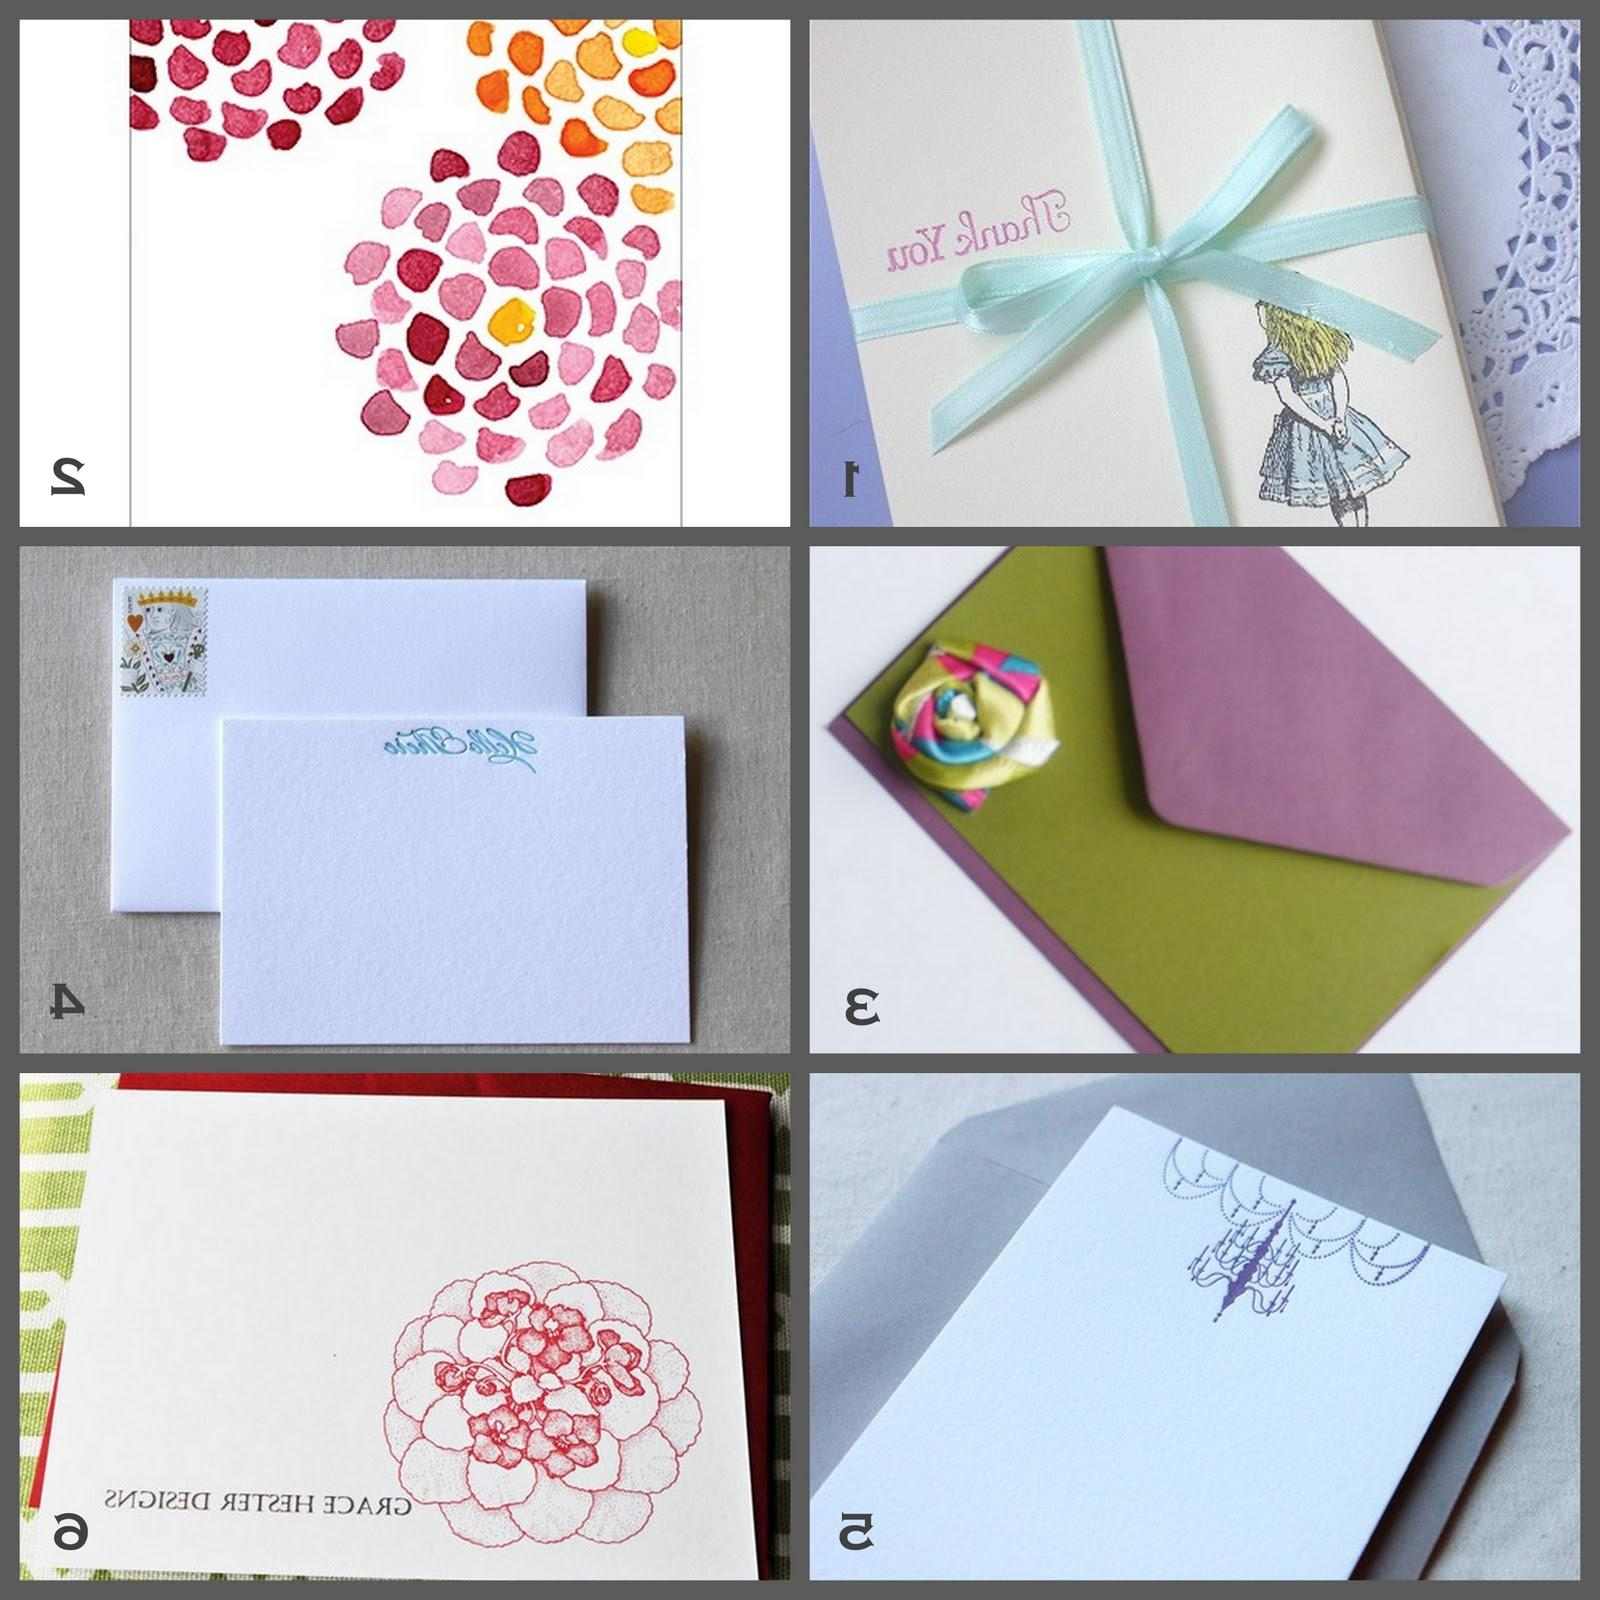 to purchase note cards.